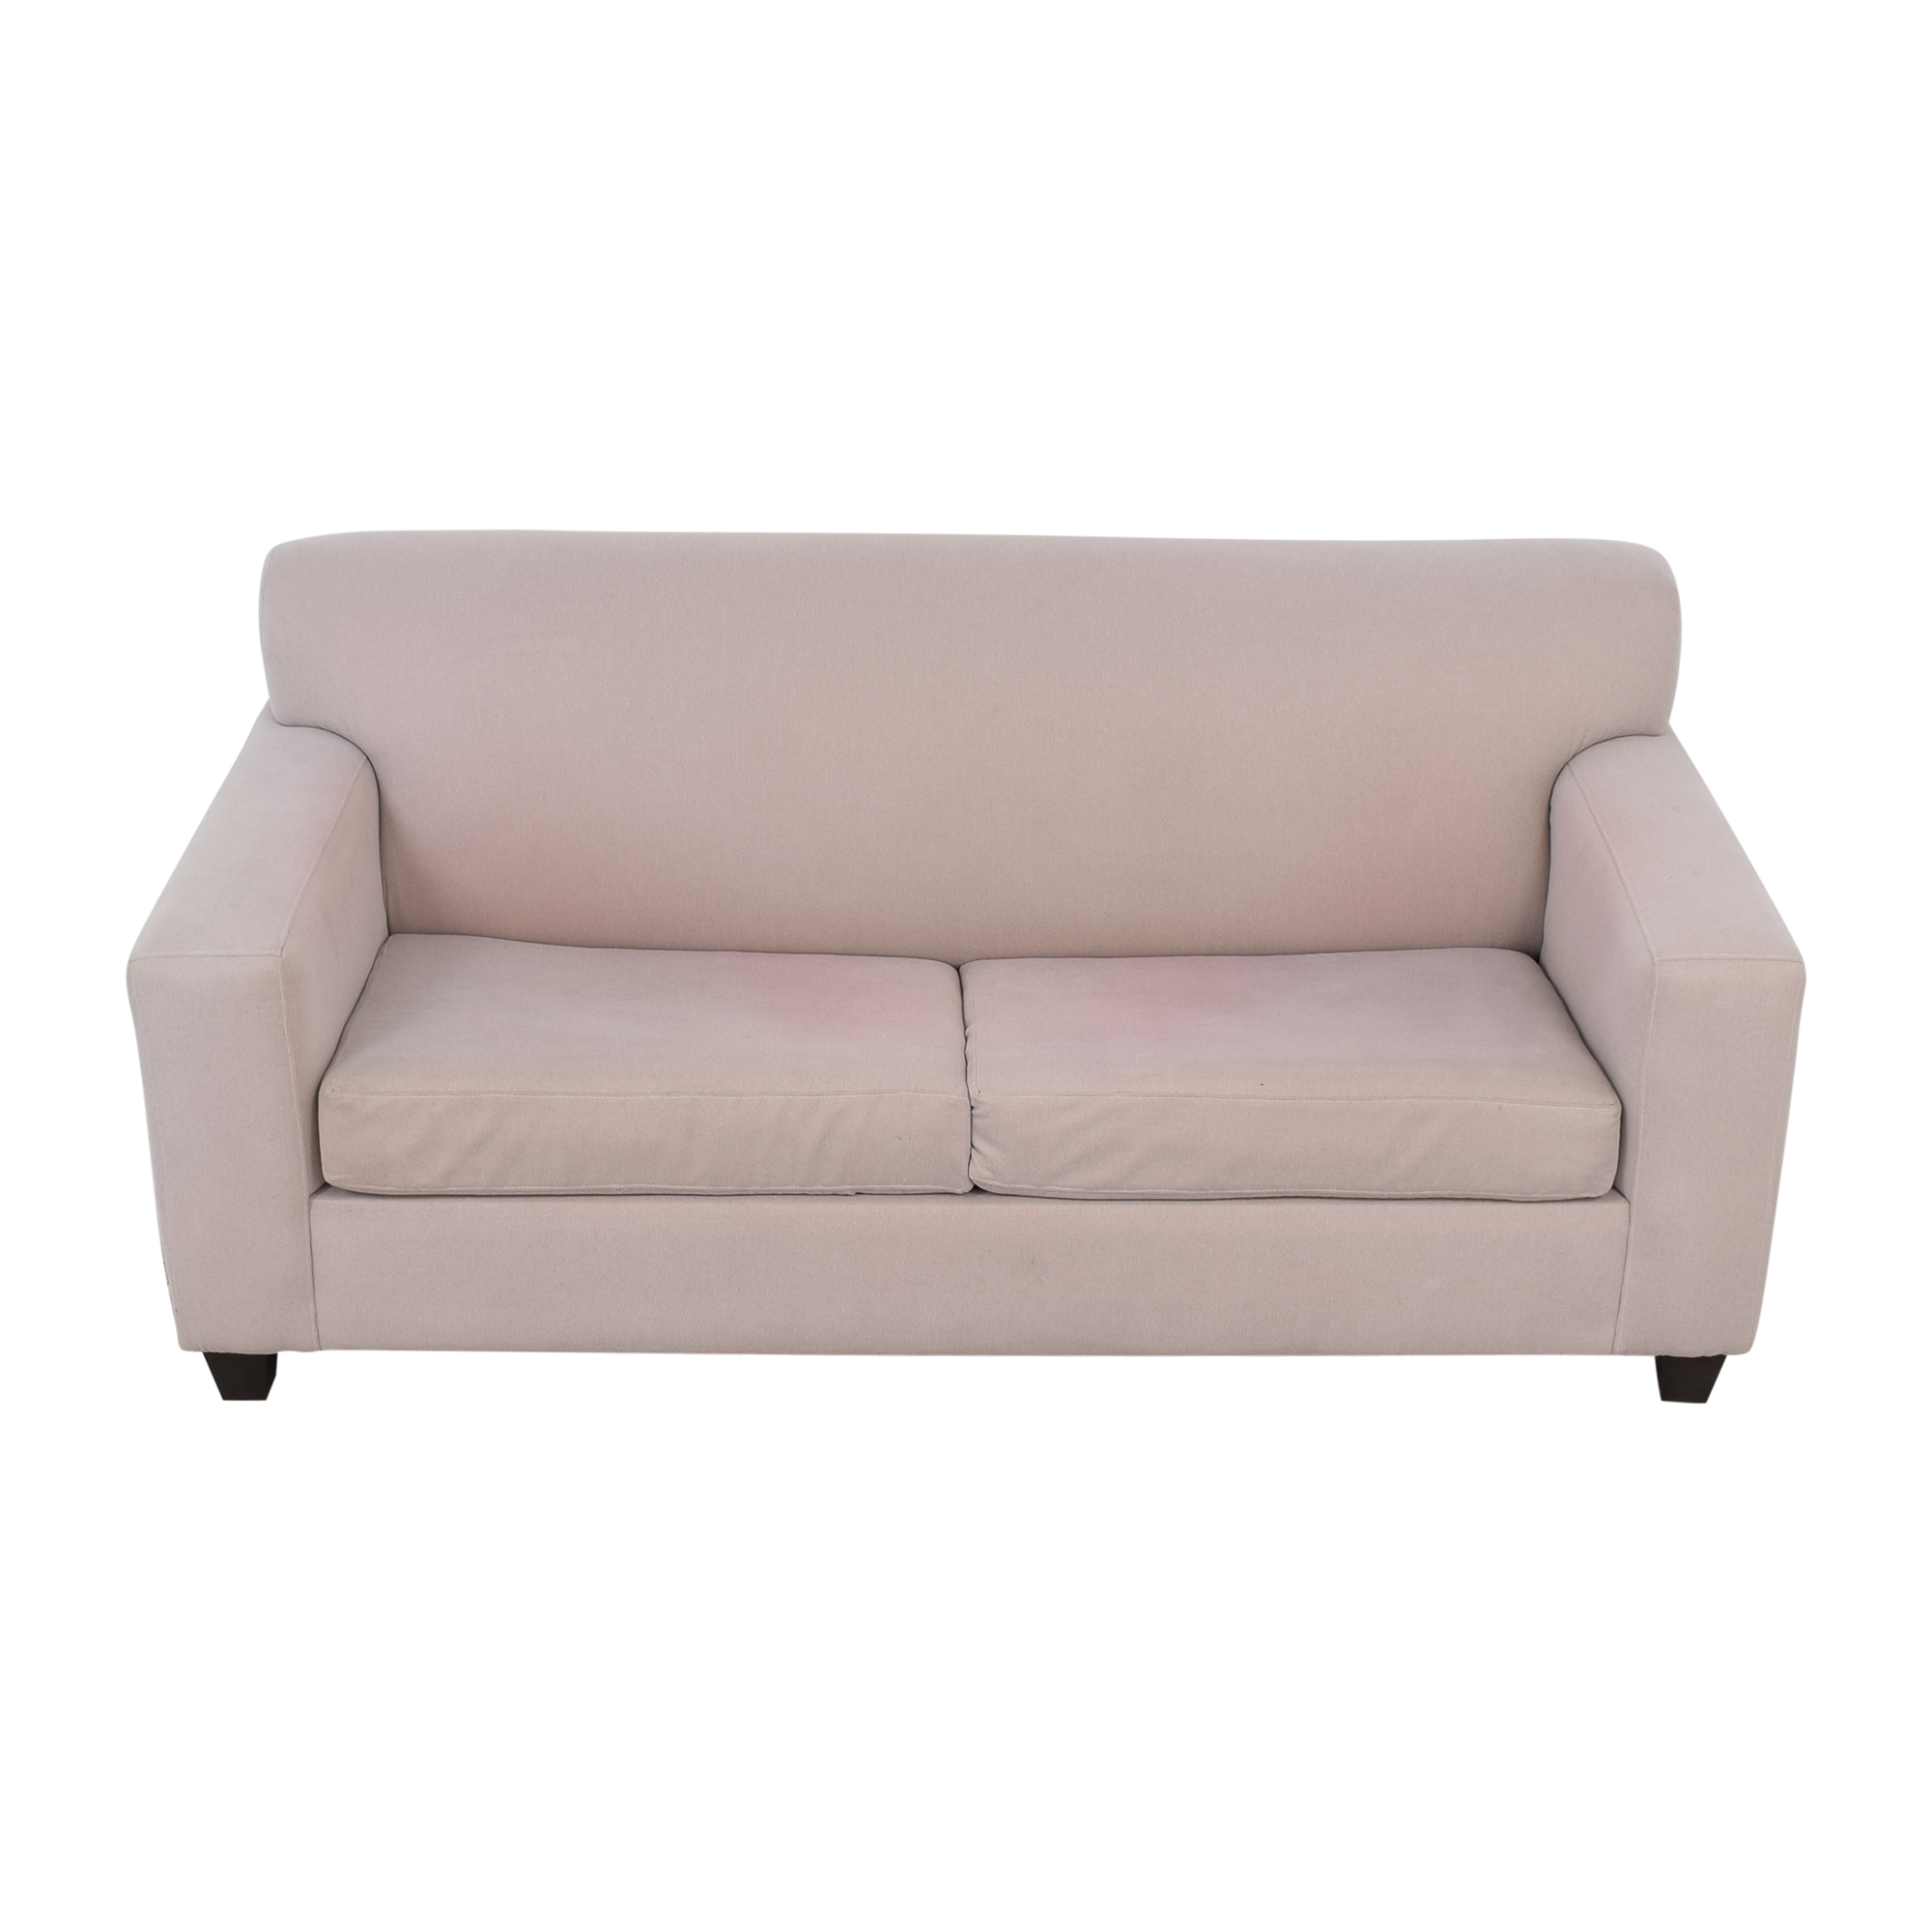 88 Off Sears Full Sofa Bed Sofas